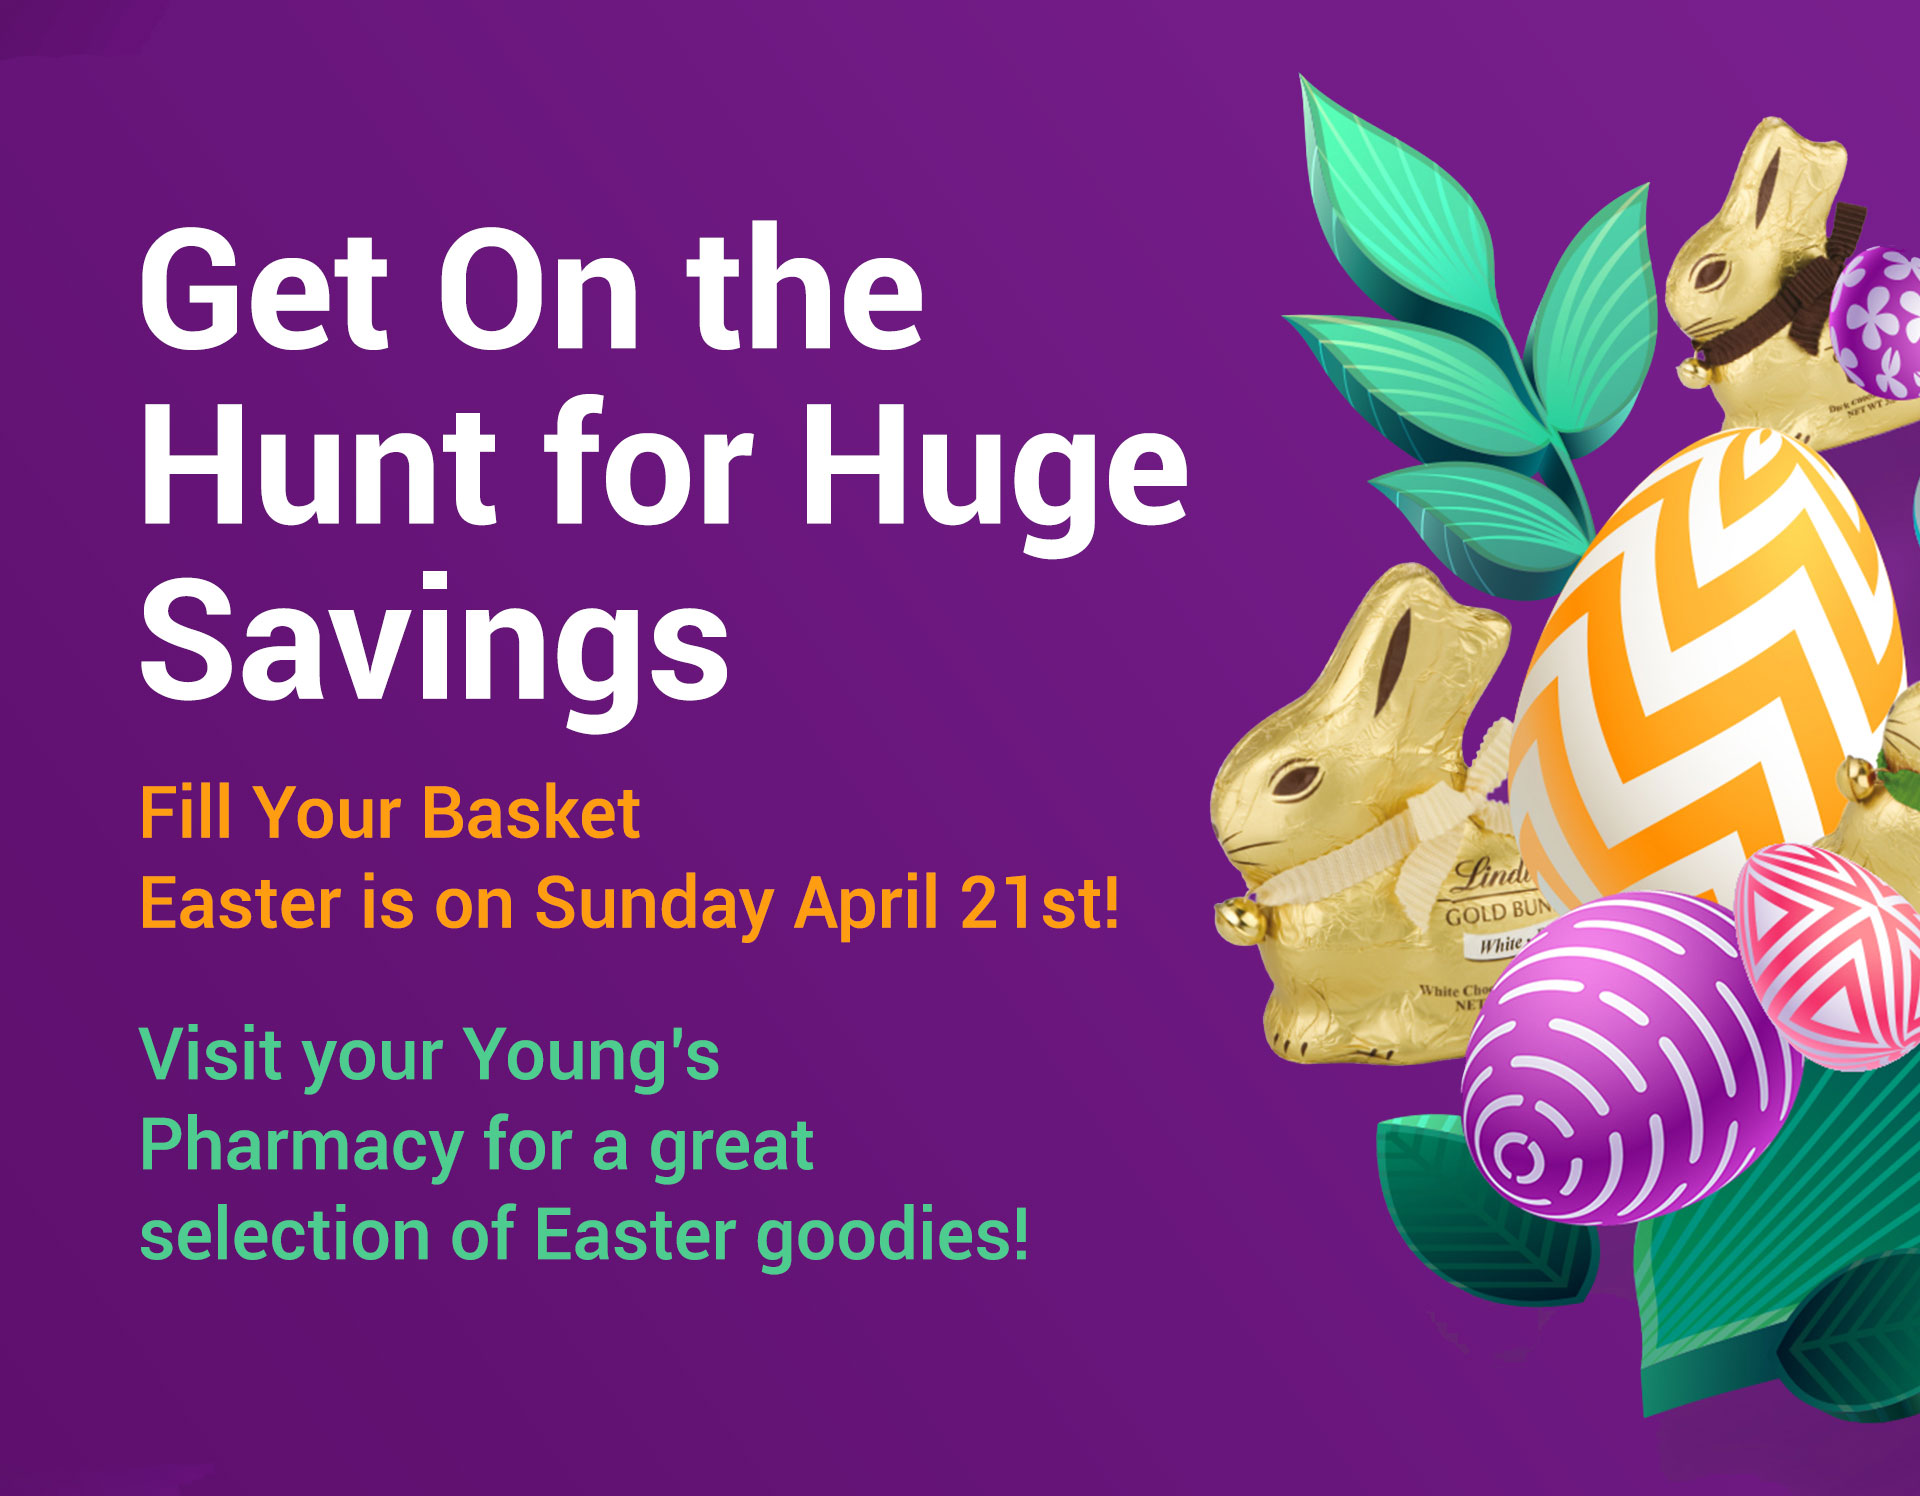 Get on the Hunt for Huge Savings!